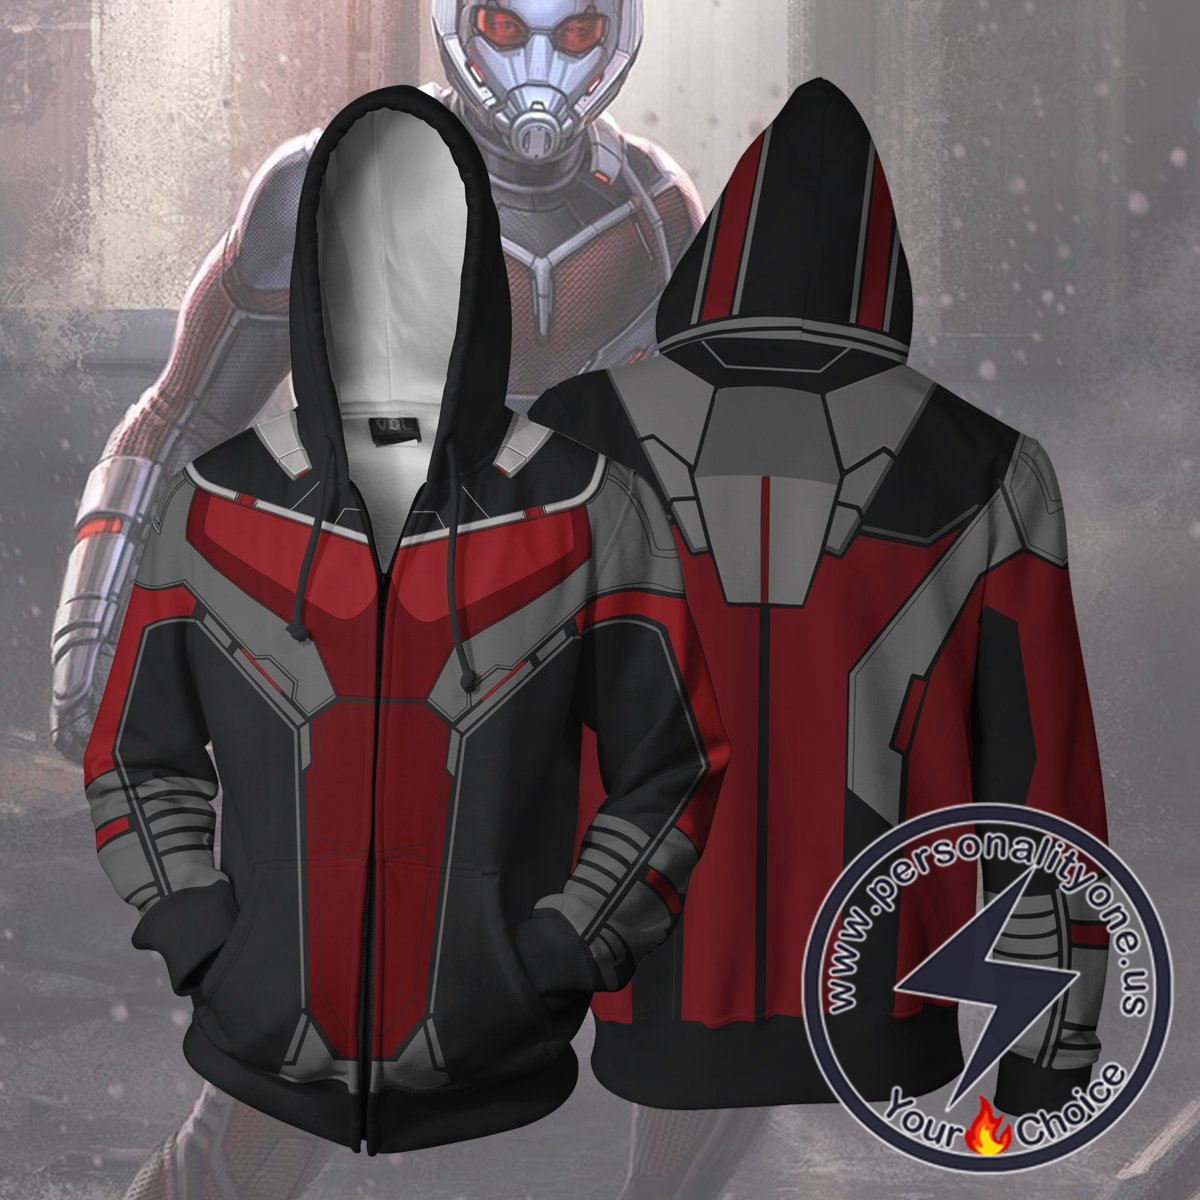 Avengers Hoodie - Ant-Man Civil War Jacket